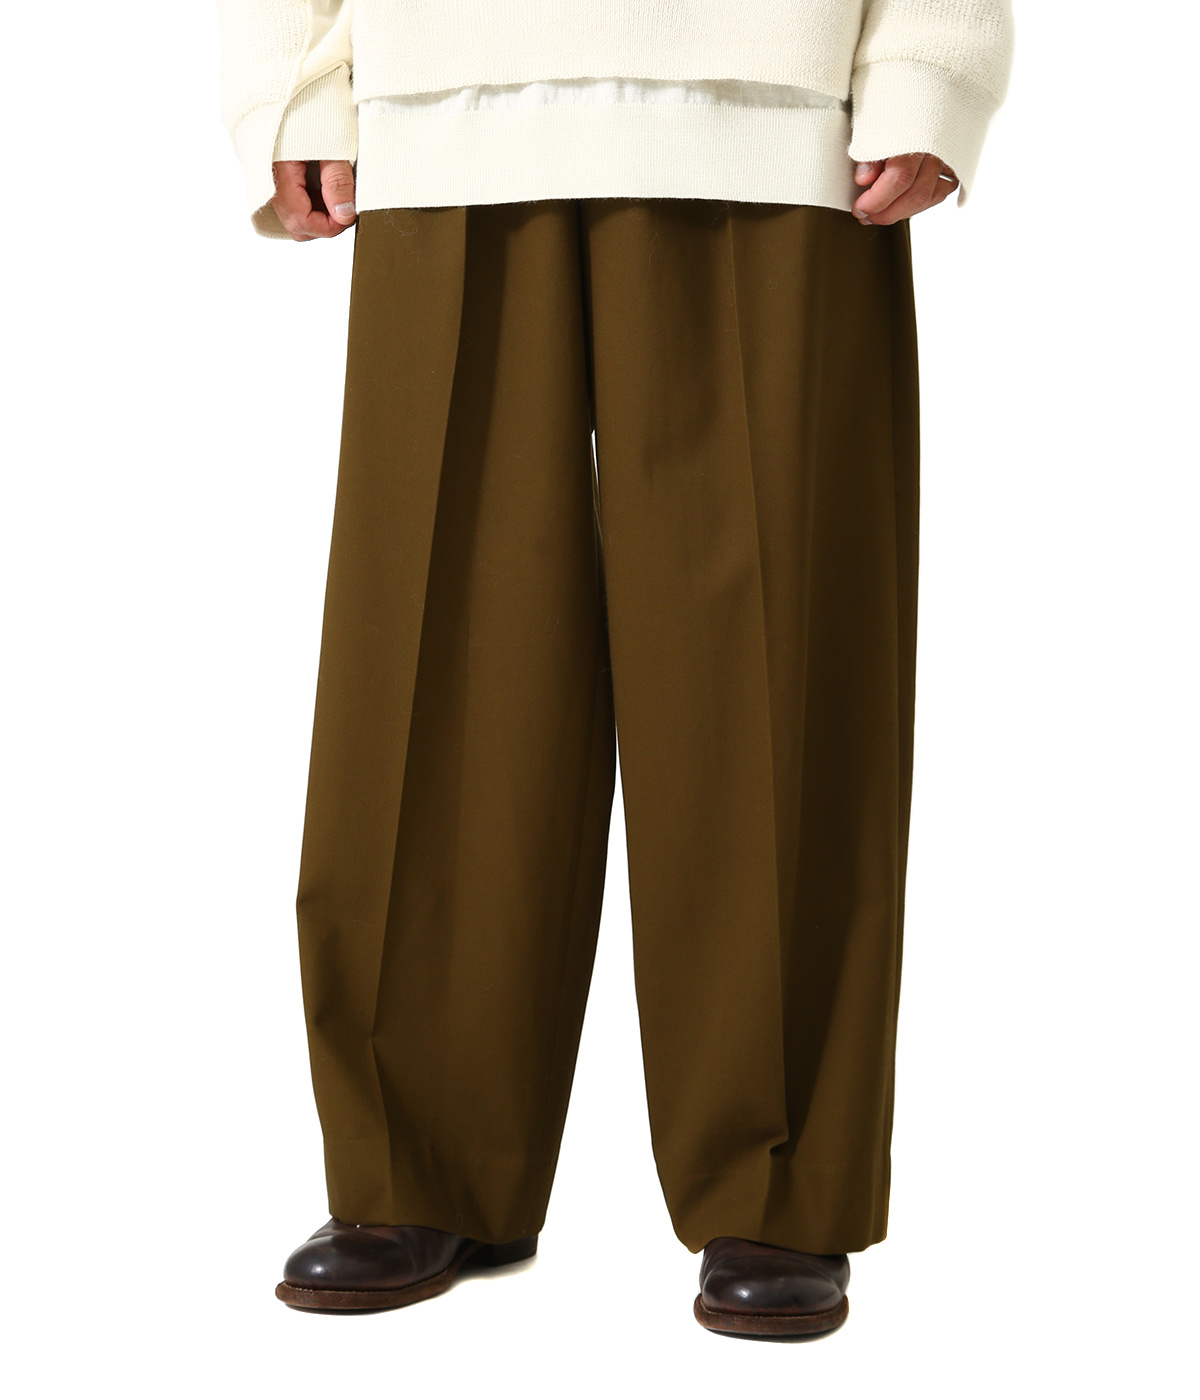 2TUCK WIDE GURKHA TROUSERS